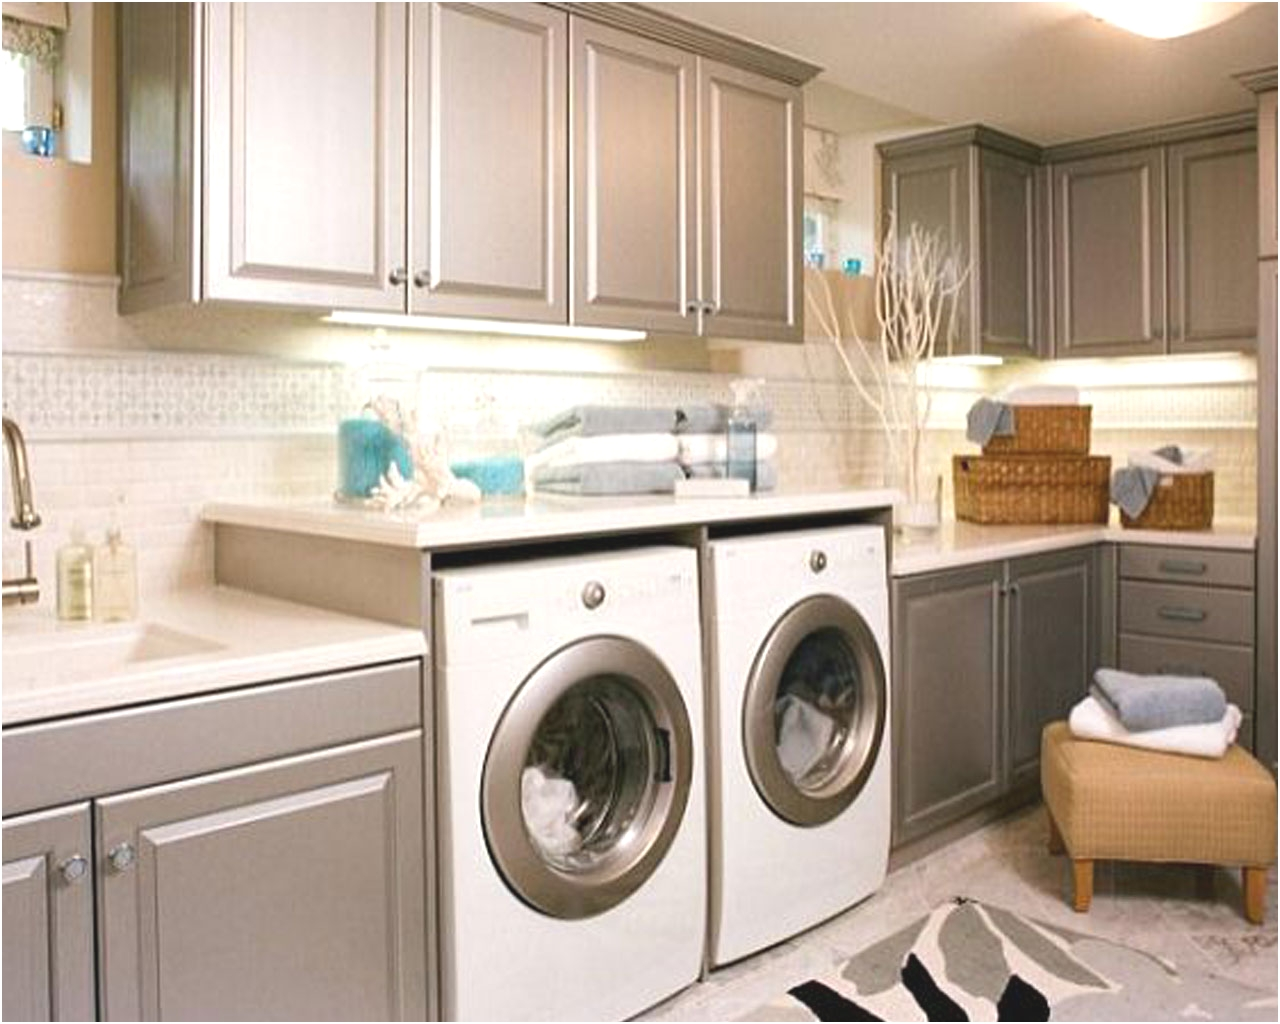 cabinets for washer and dryer in kitchen